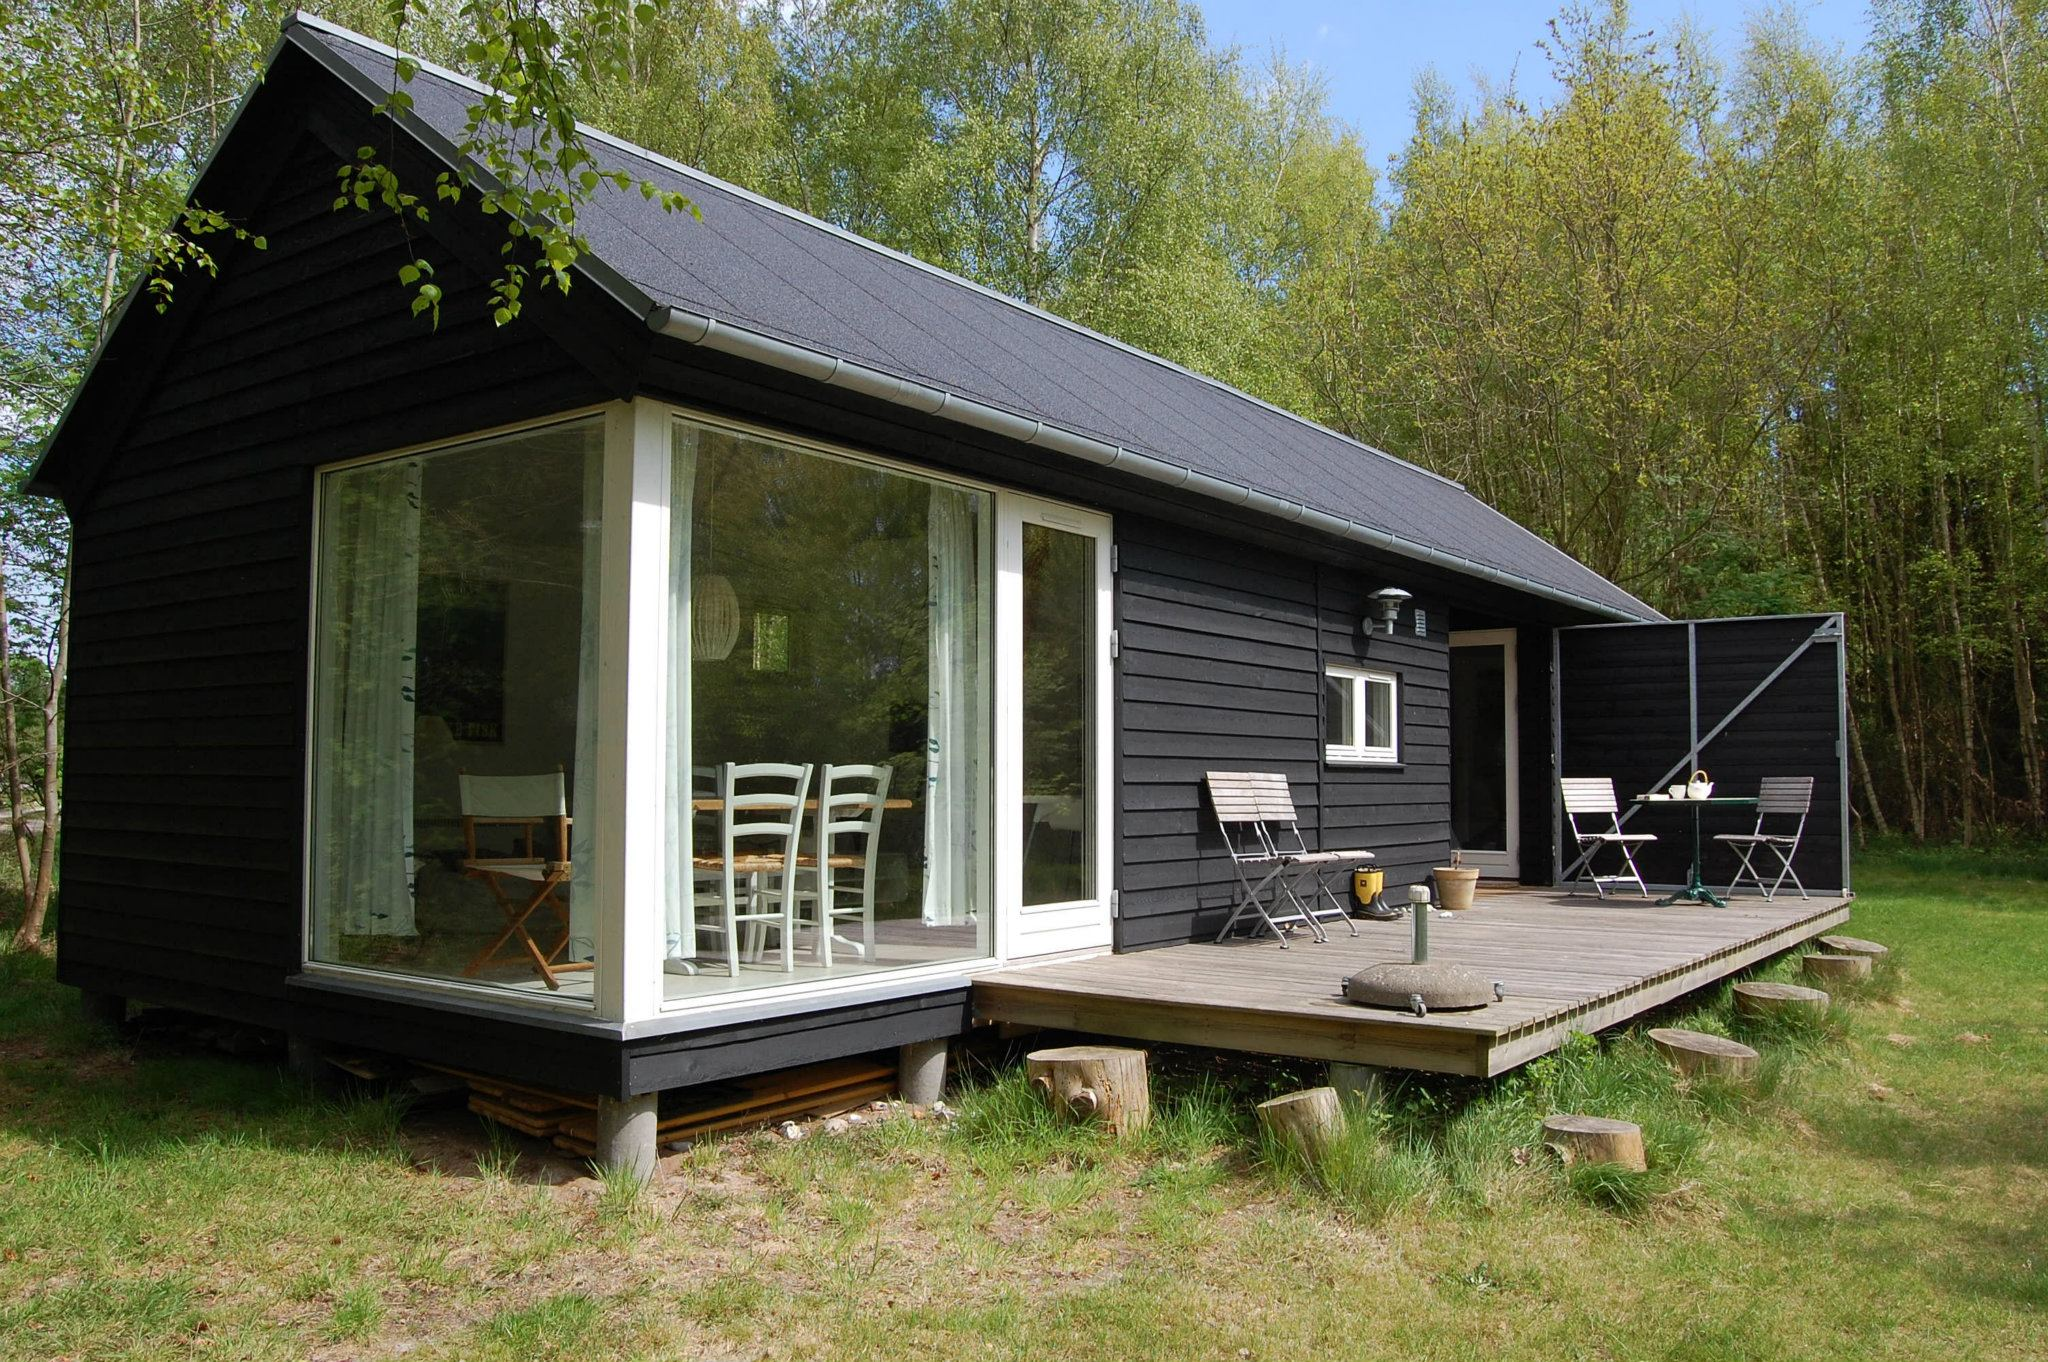 Best The Lngehuset A Modular Vacation House From Denmark With Bedrooms In  Sq Ft With Minecraft Small Cabin